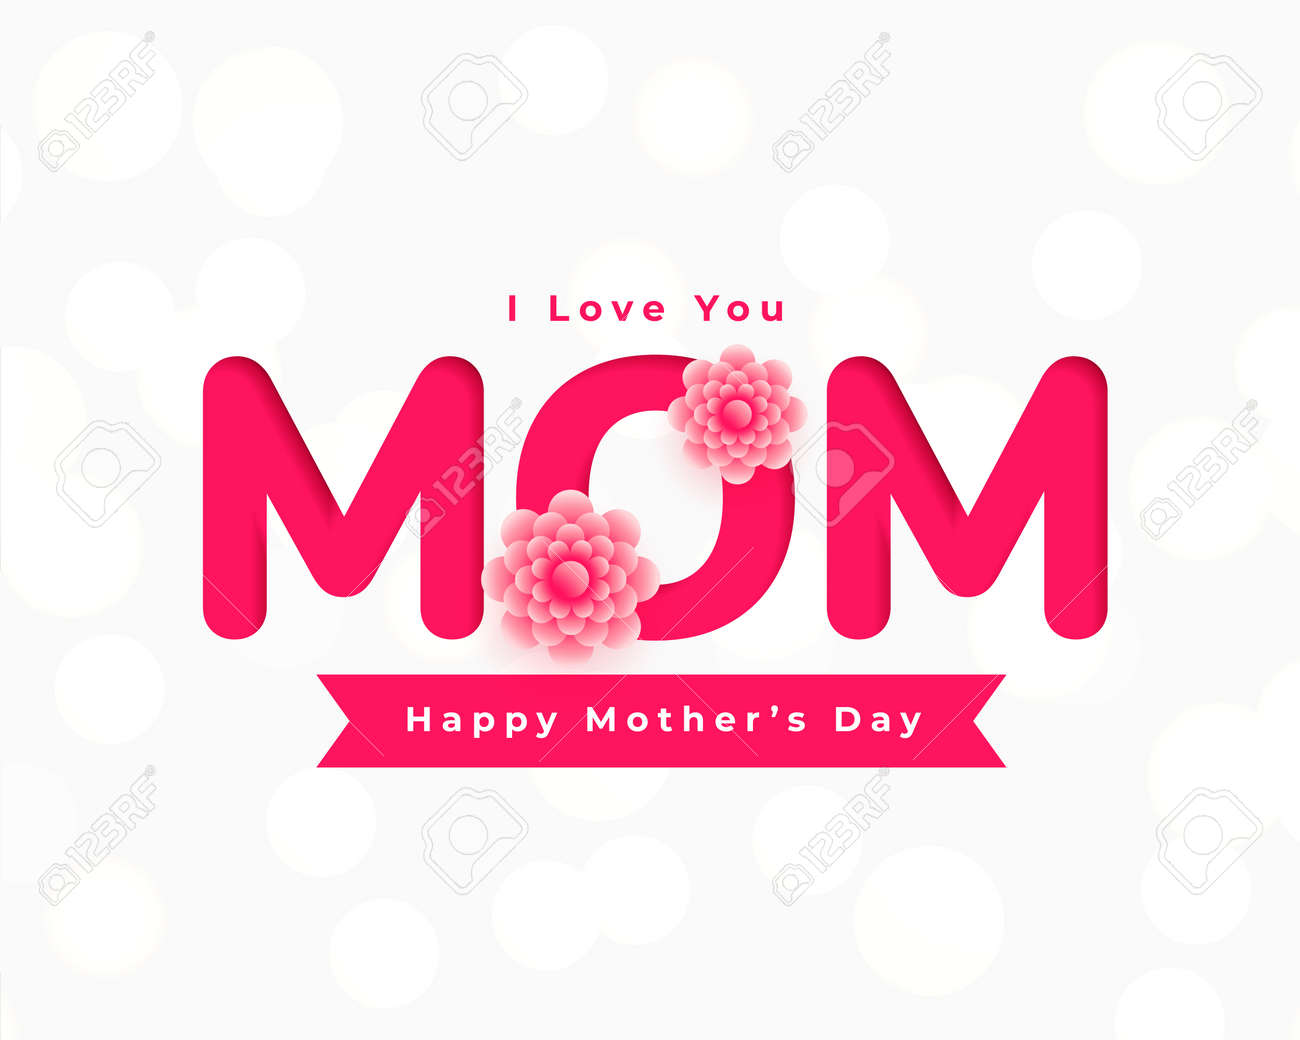 happy mothers day flower card greeting - 167909874